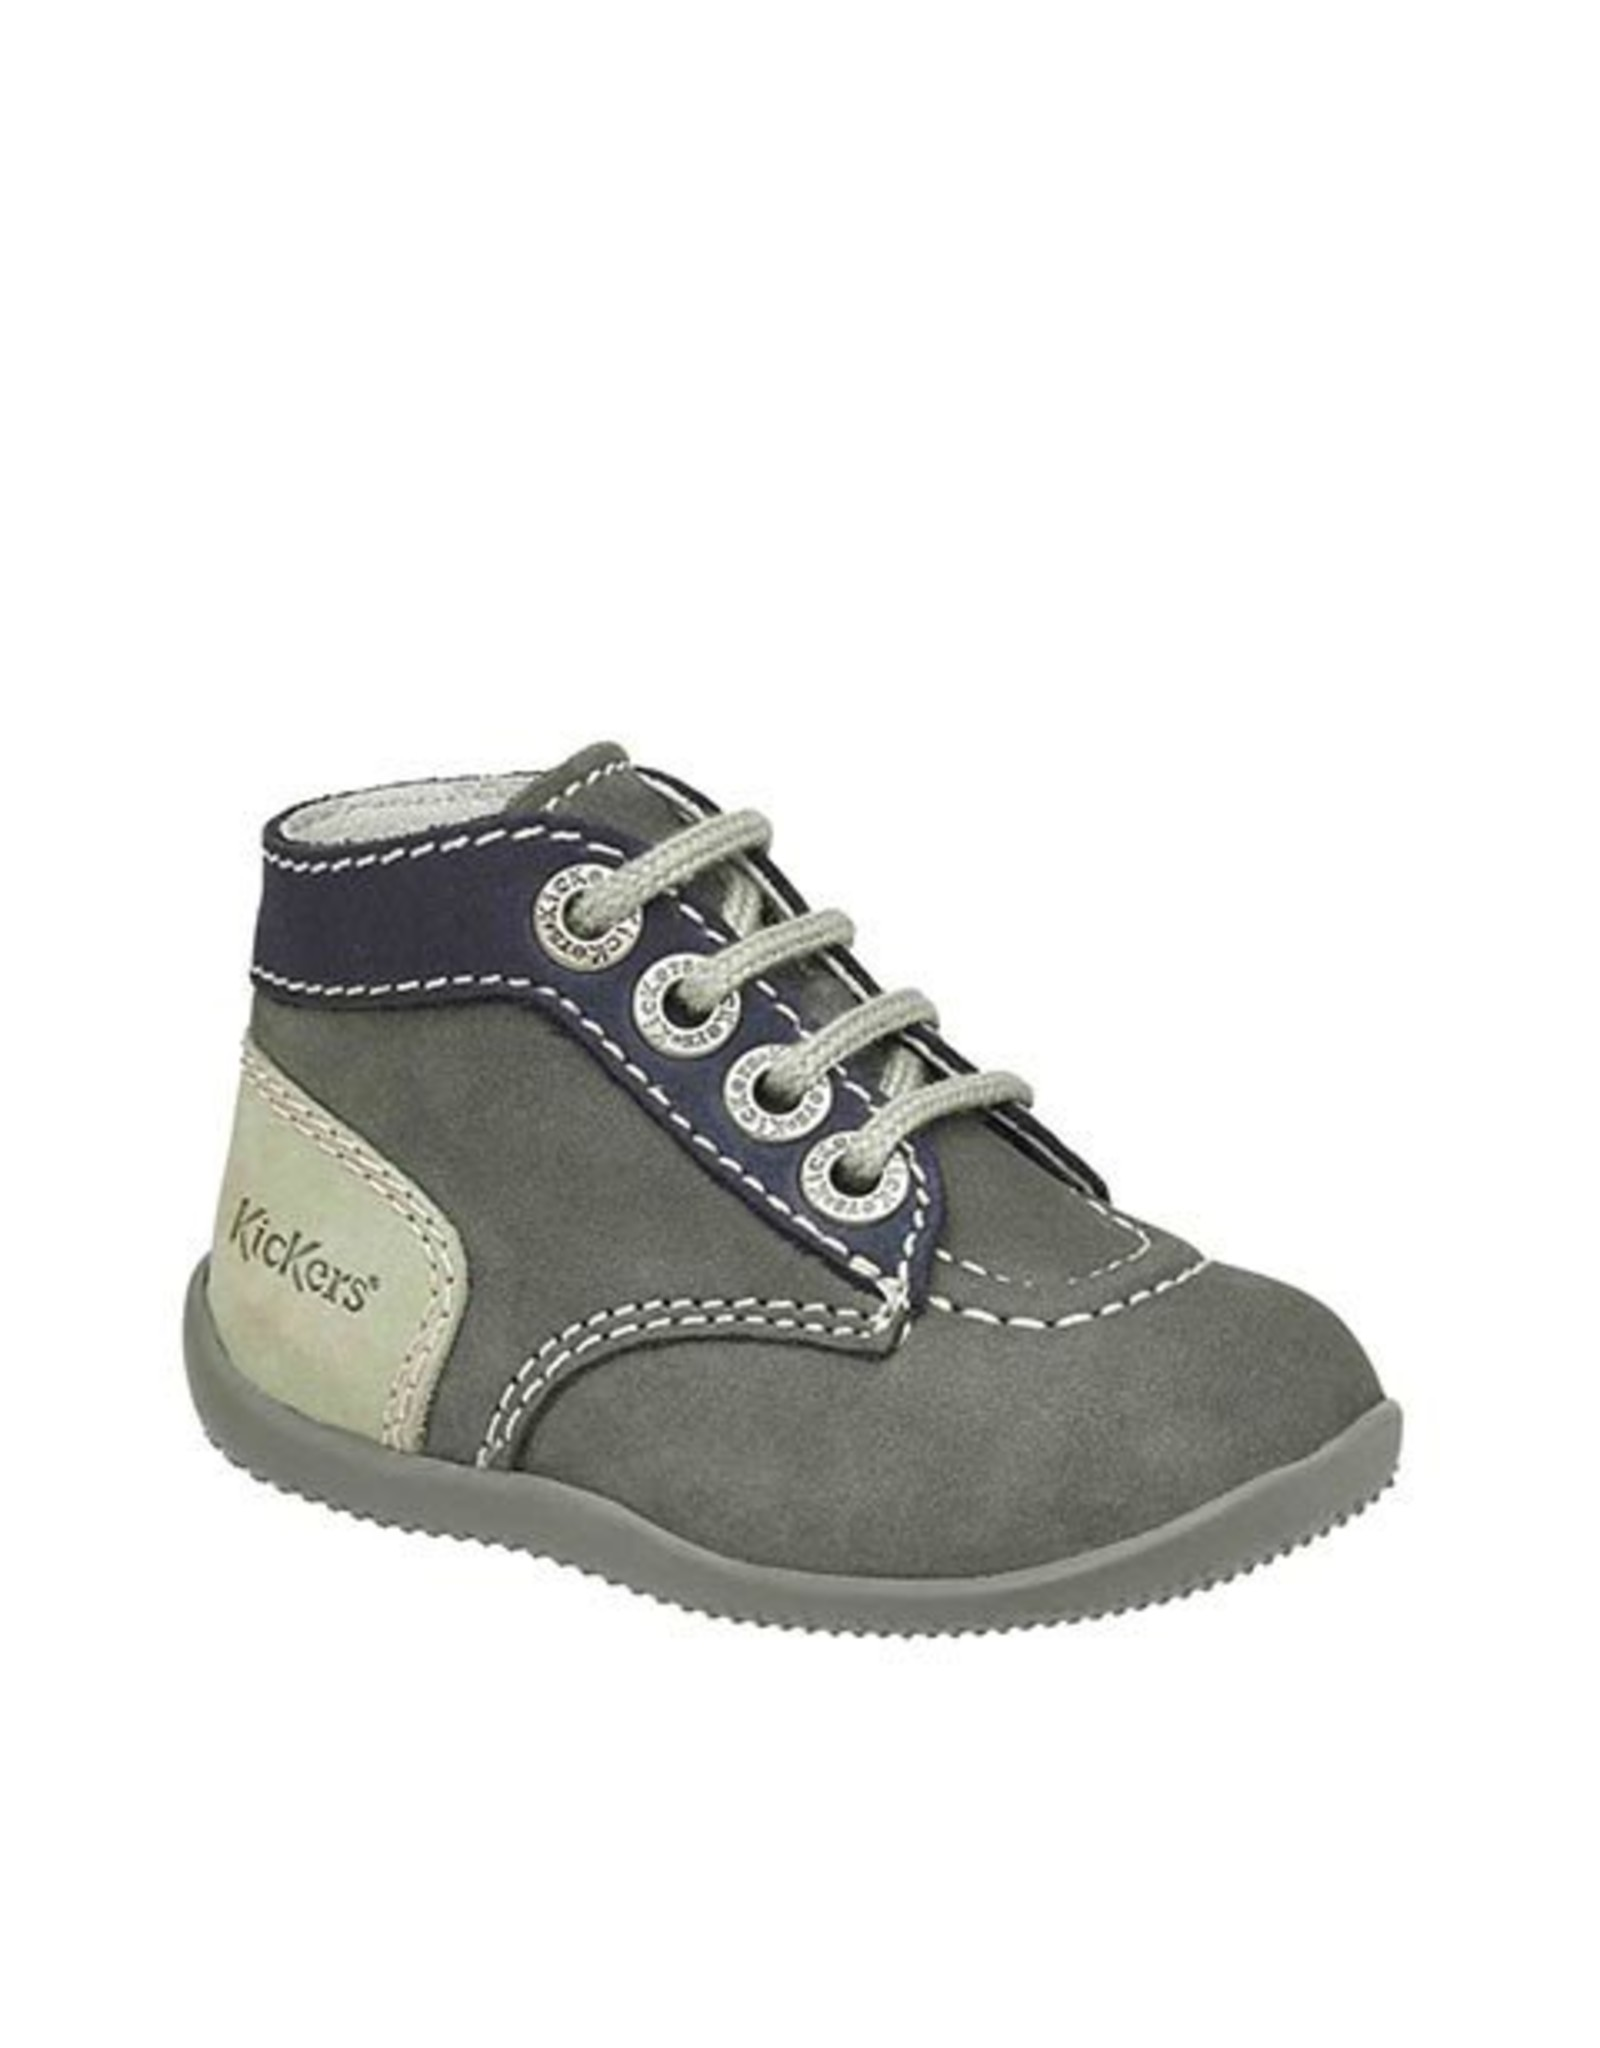 KICKERS BONBON GRAY NAVY GRAY CLEAR KN3GM